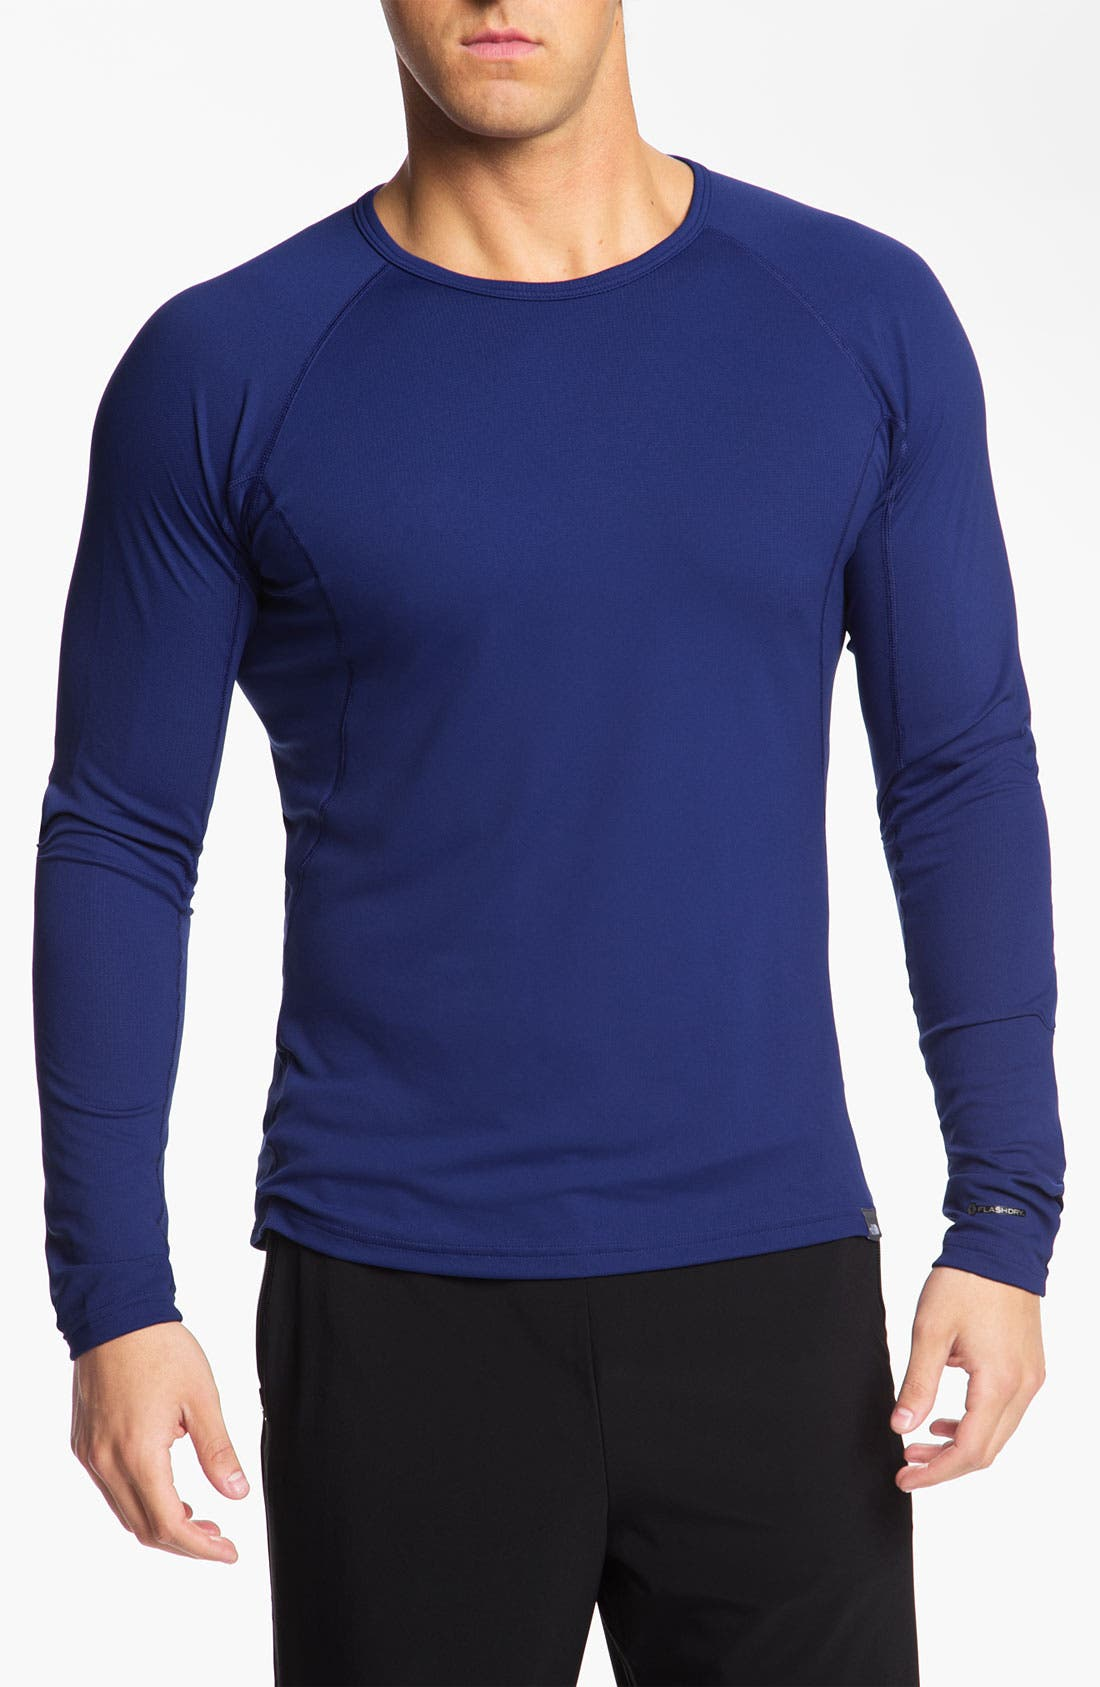 Main Image - The North Face HyActive™ Technical Crewneck T-Shirt (Online Only)